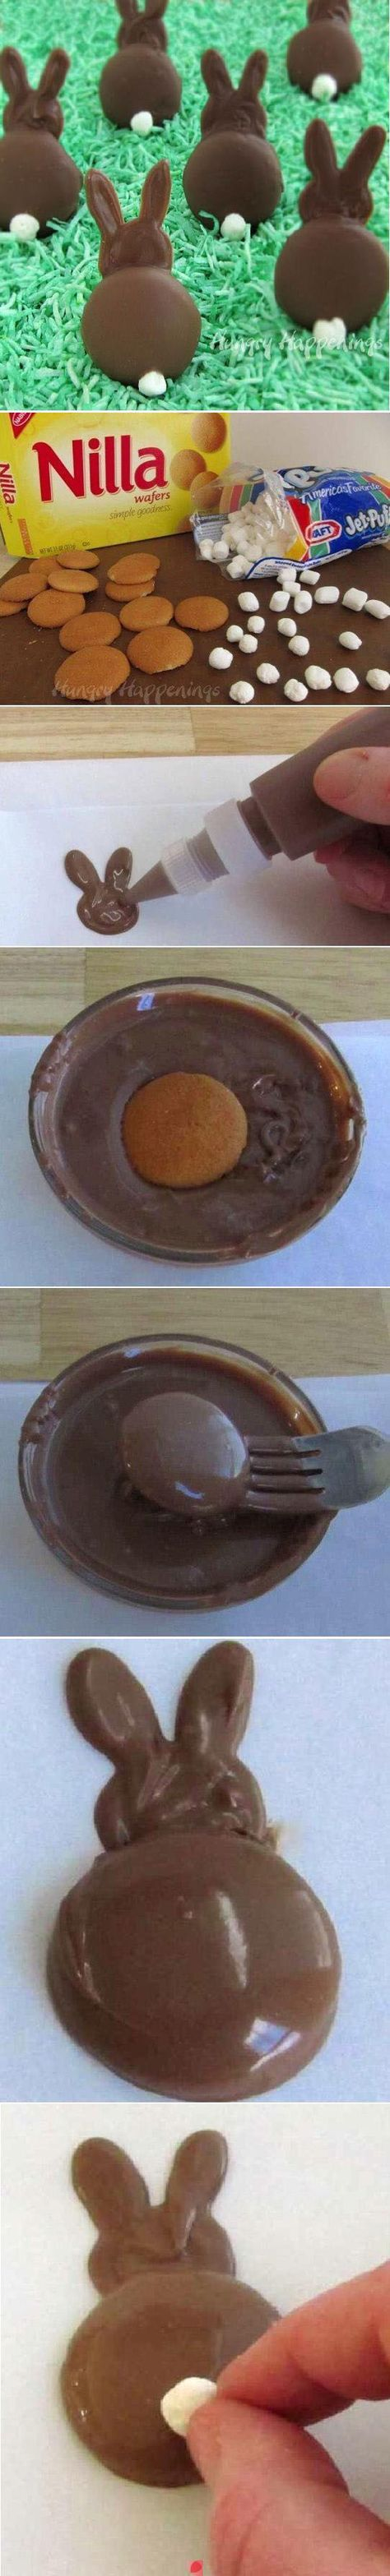 Why Nilla Wafers? We Could Just MAKE A Round Shortbread Cookie Then Coat It In Chocolate!